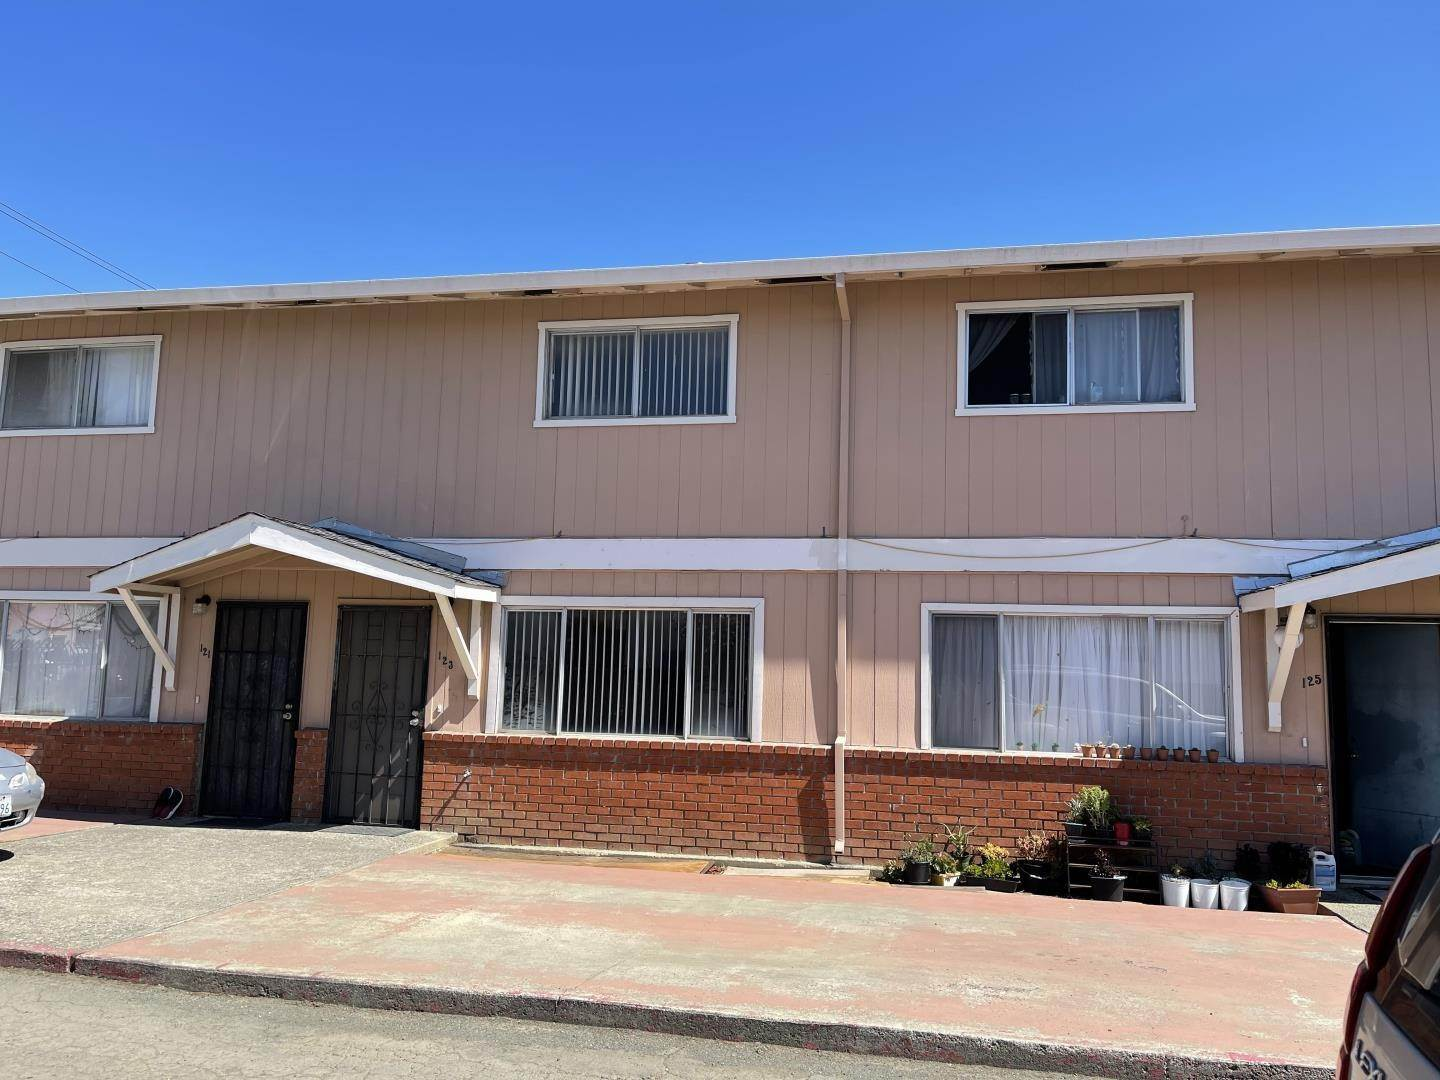 Multi-Family Homes for Sale at 127 Ifland Way Vallejo, California 94589 United States